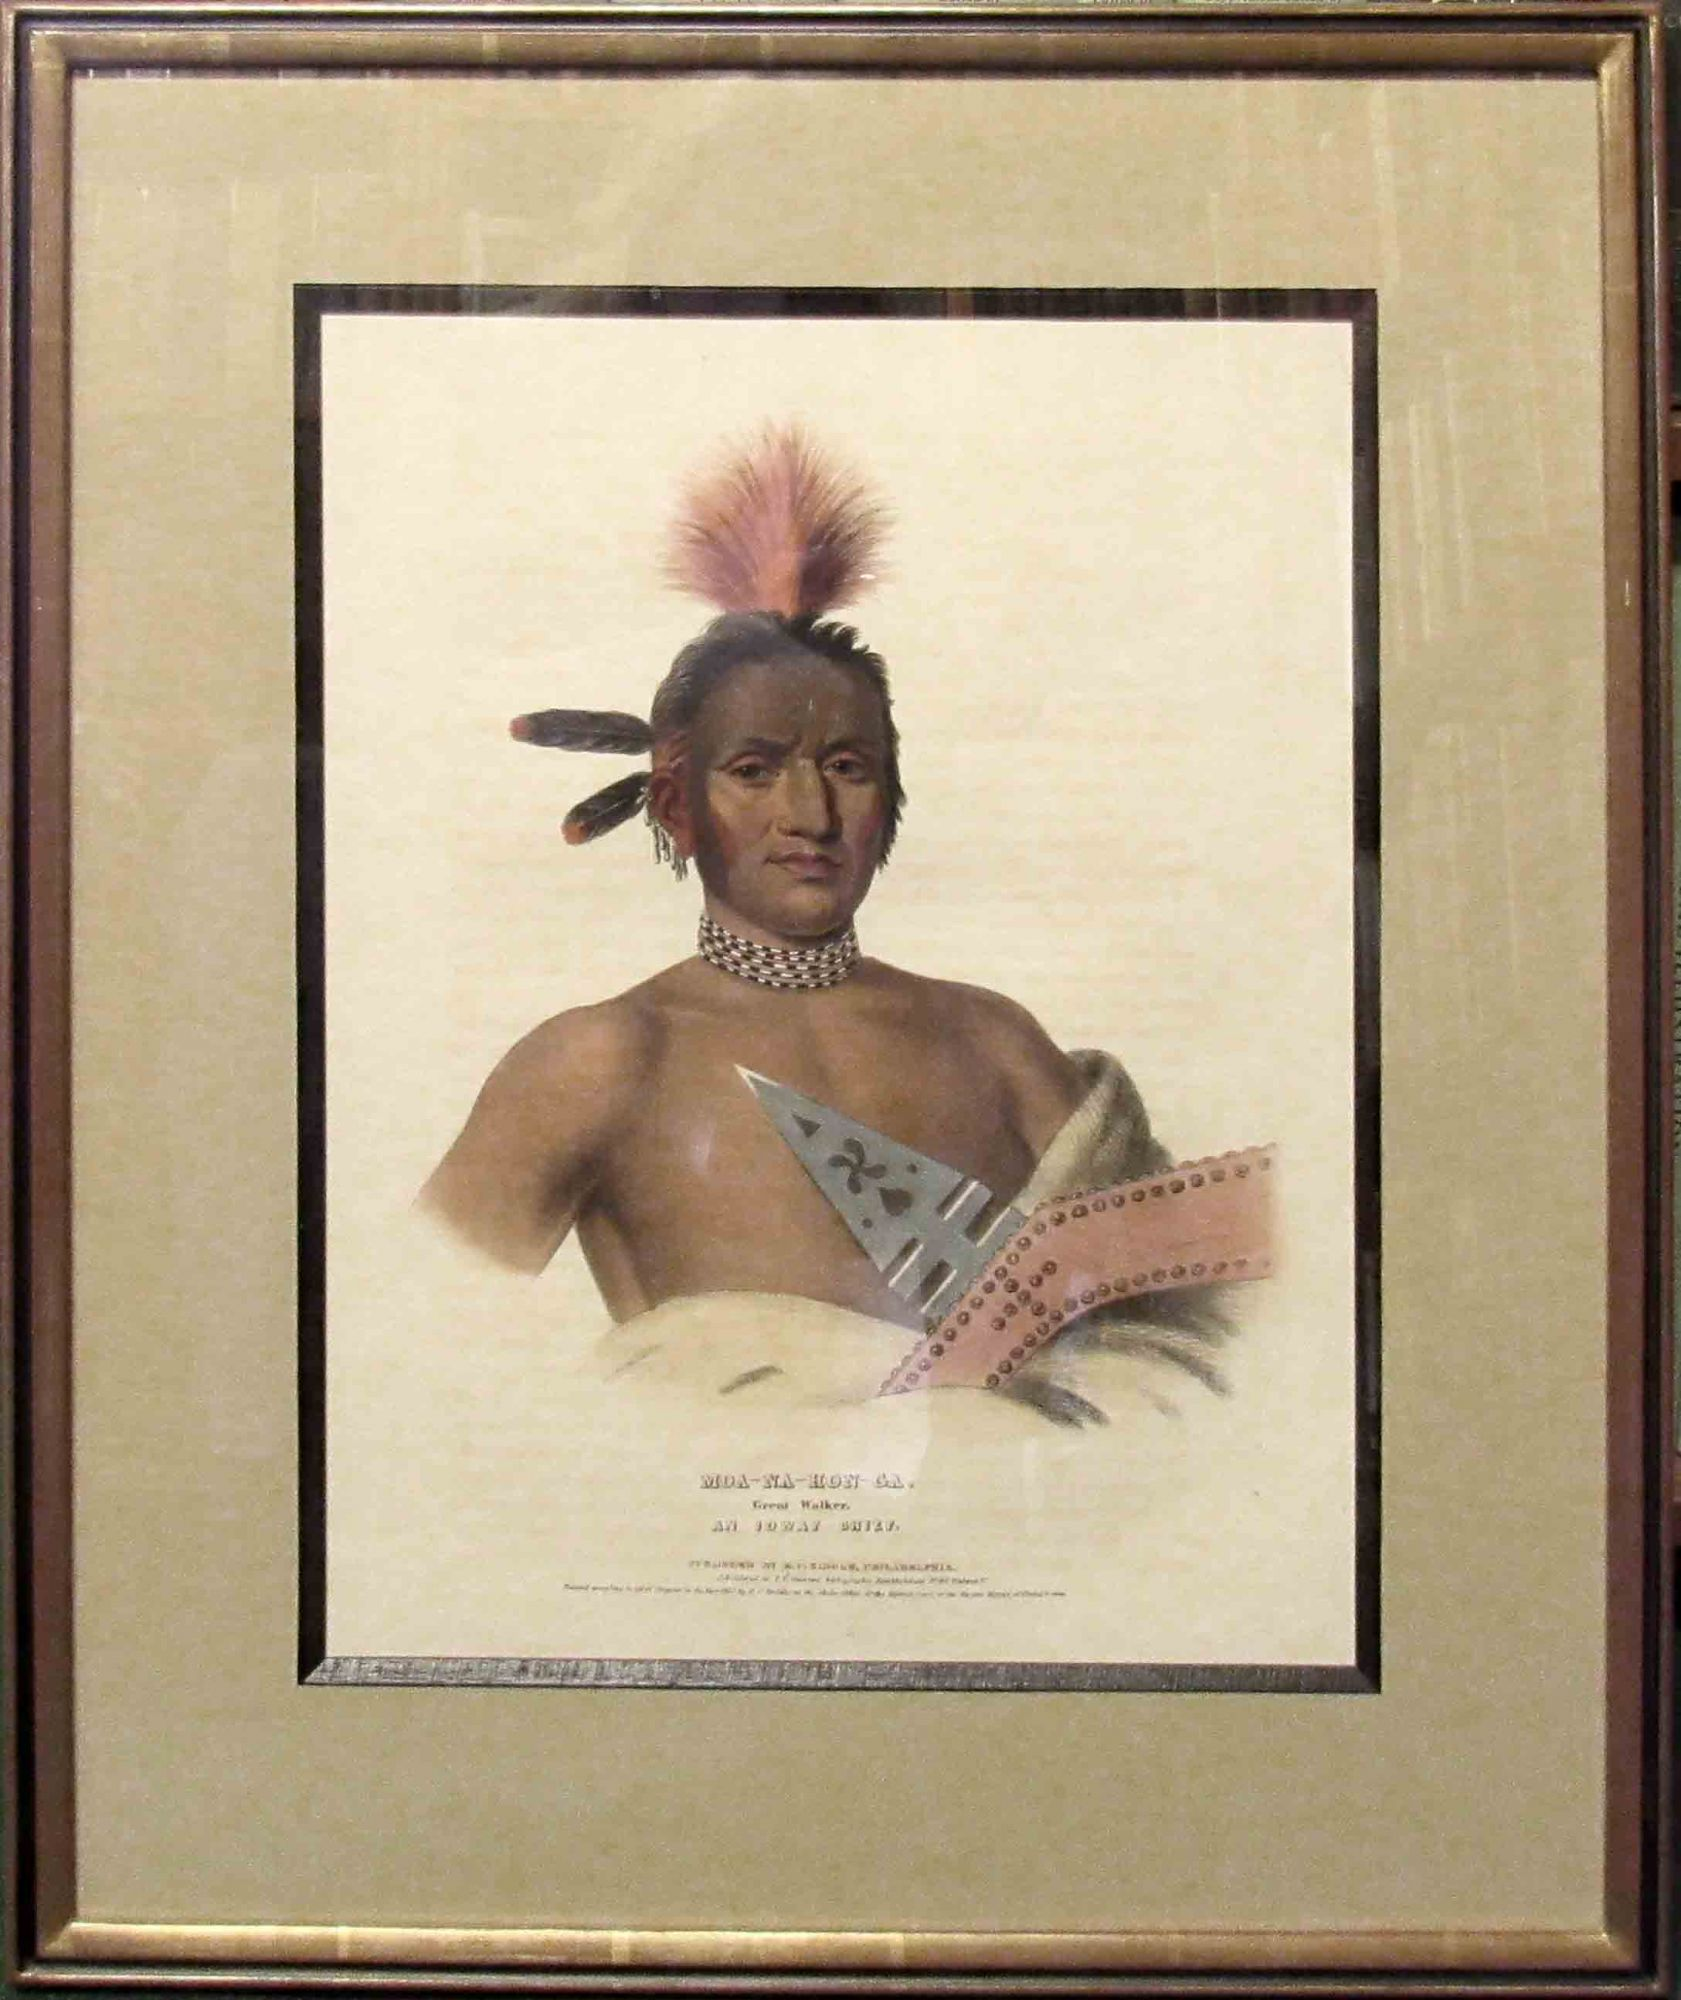 [Plate] MOA-NA-HON-GA. GREAT WALKER. An Ioway Chief. [From HISTORY OF THE INDIAN TRIBES OF NORTH AMERICA]. Native American, Thomas L. McKenney, James Hall.